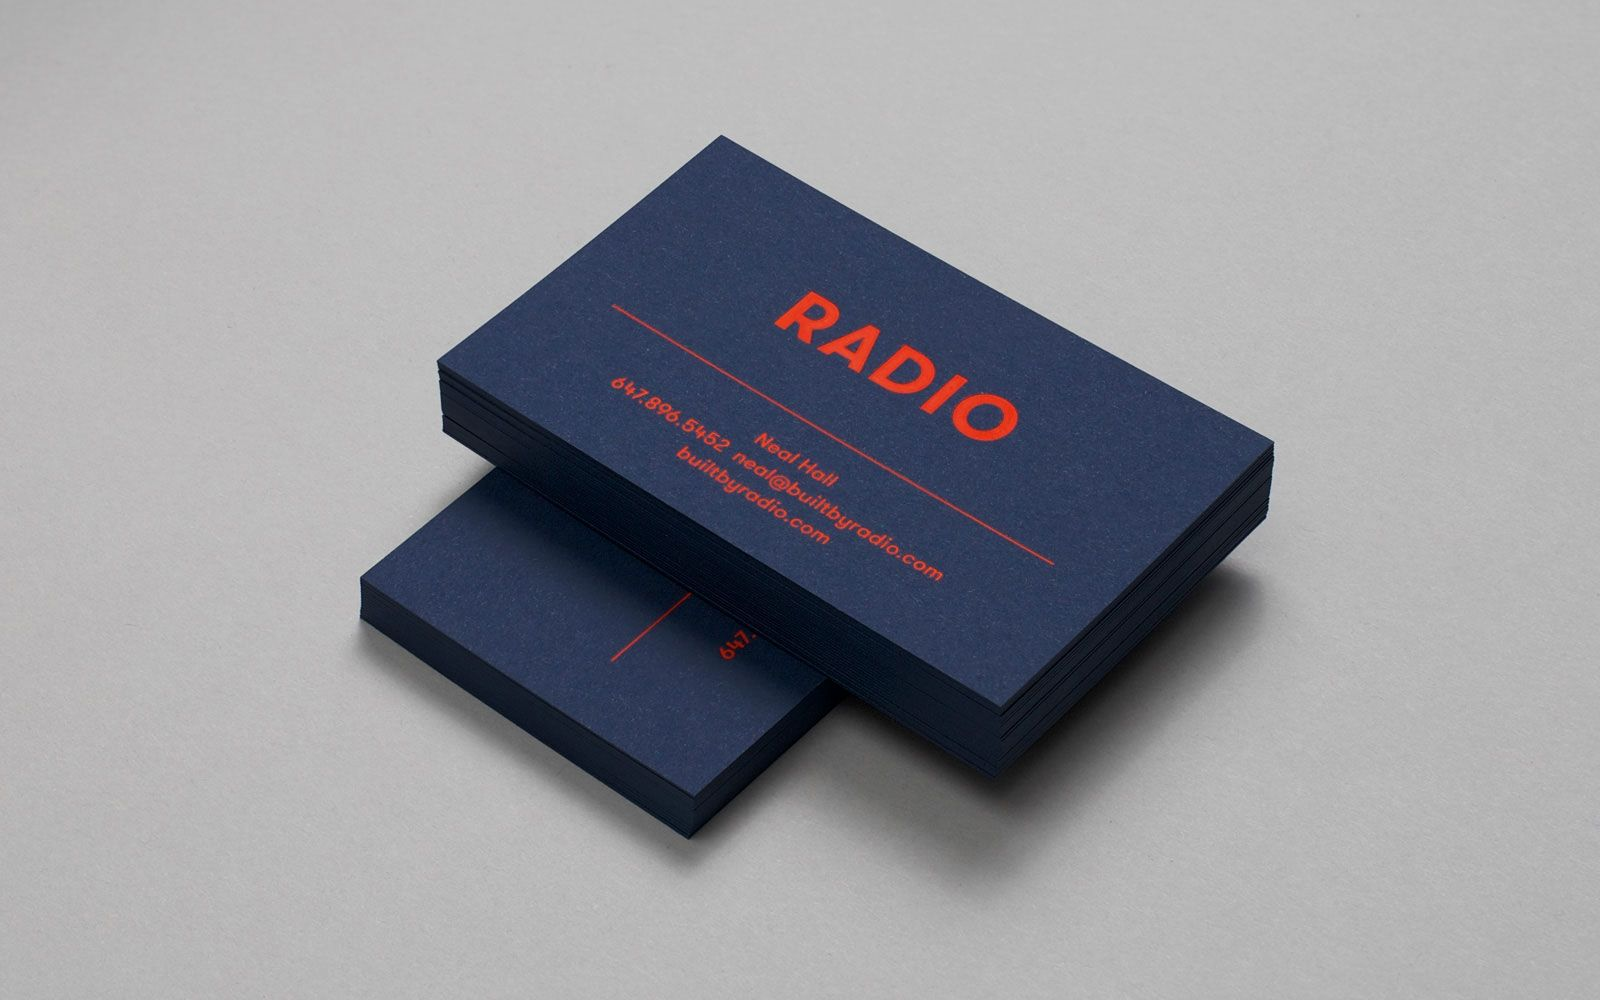 Radio grilli type independent swiss type foundry gt walsheim radio grilli type independent swiss type foundry gt walsheim free trial fonts design cardsname card designbusiness reheart Image collections